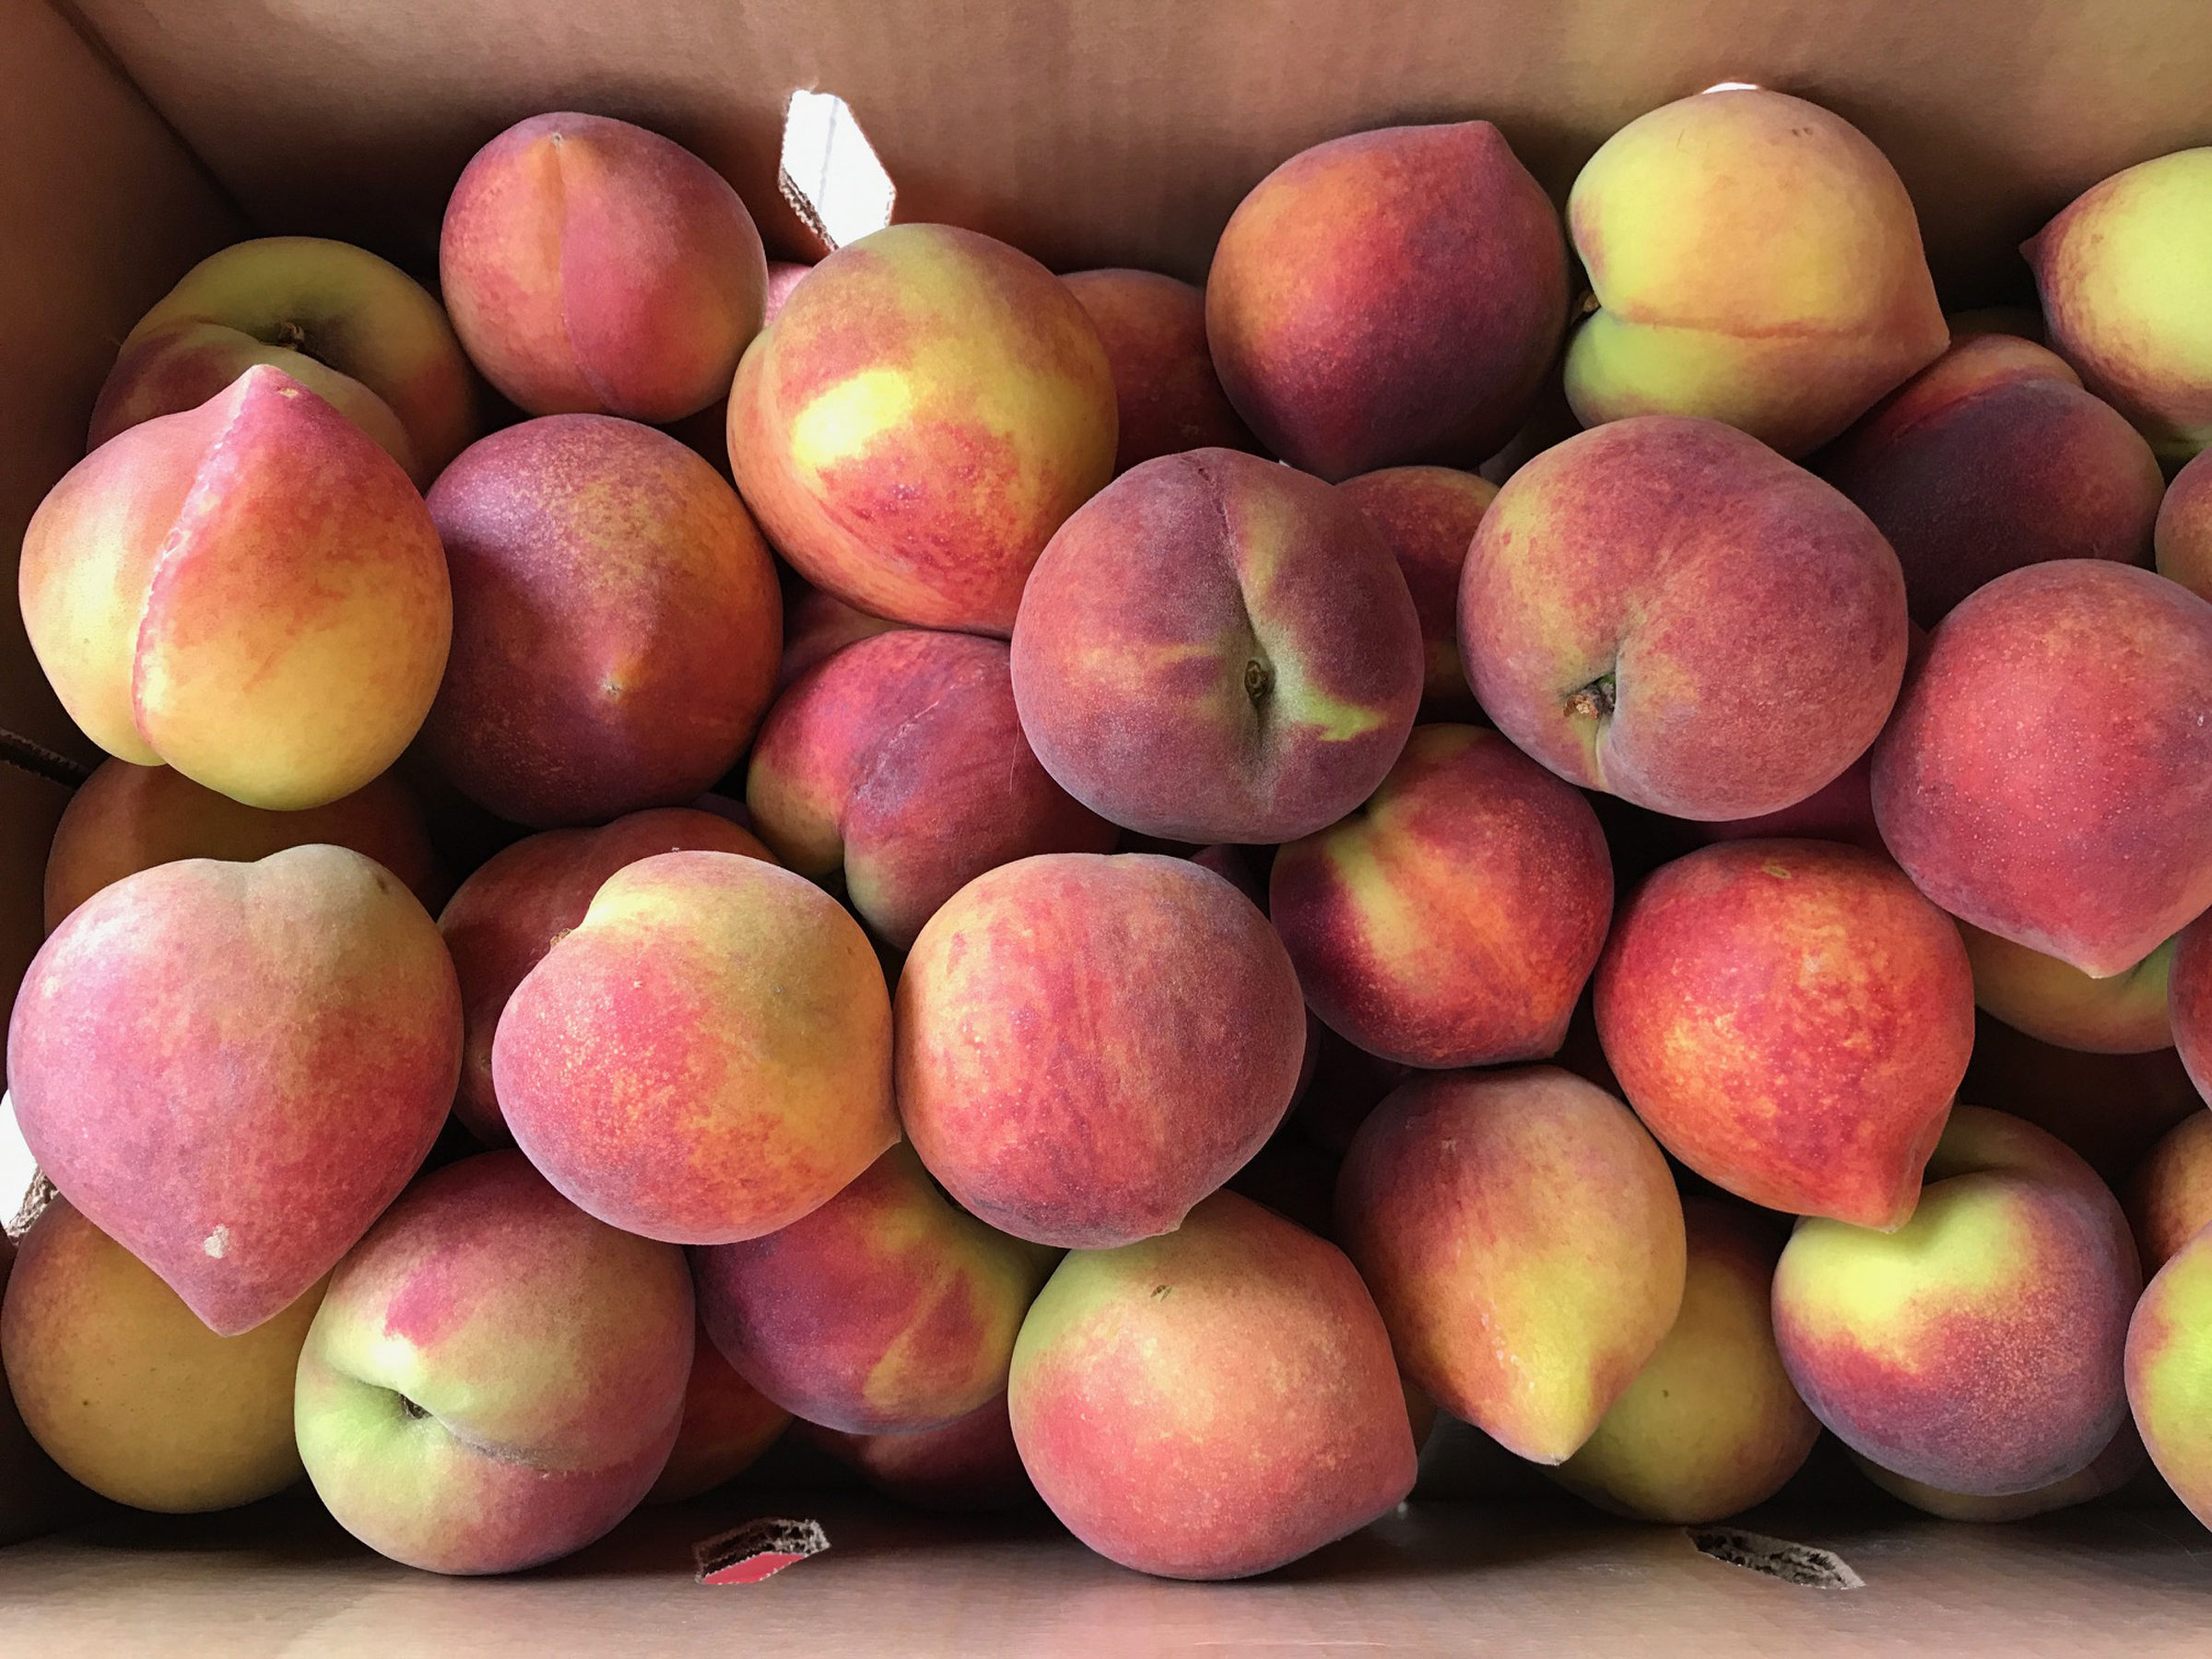 peaches The Peach Truck sold 25-pound boxes of cling peaches Sunday at six locations in Western Pennsylvania.